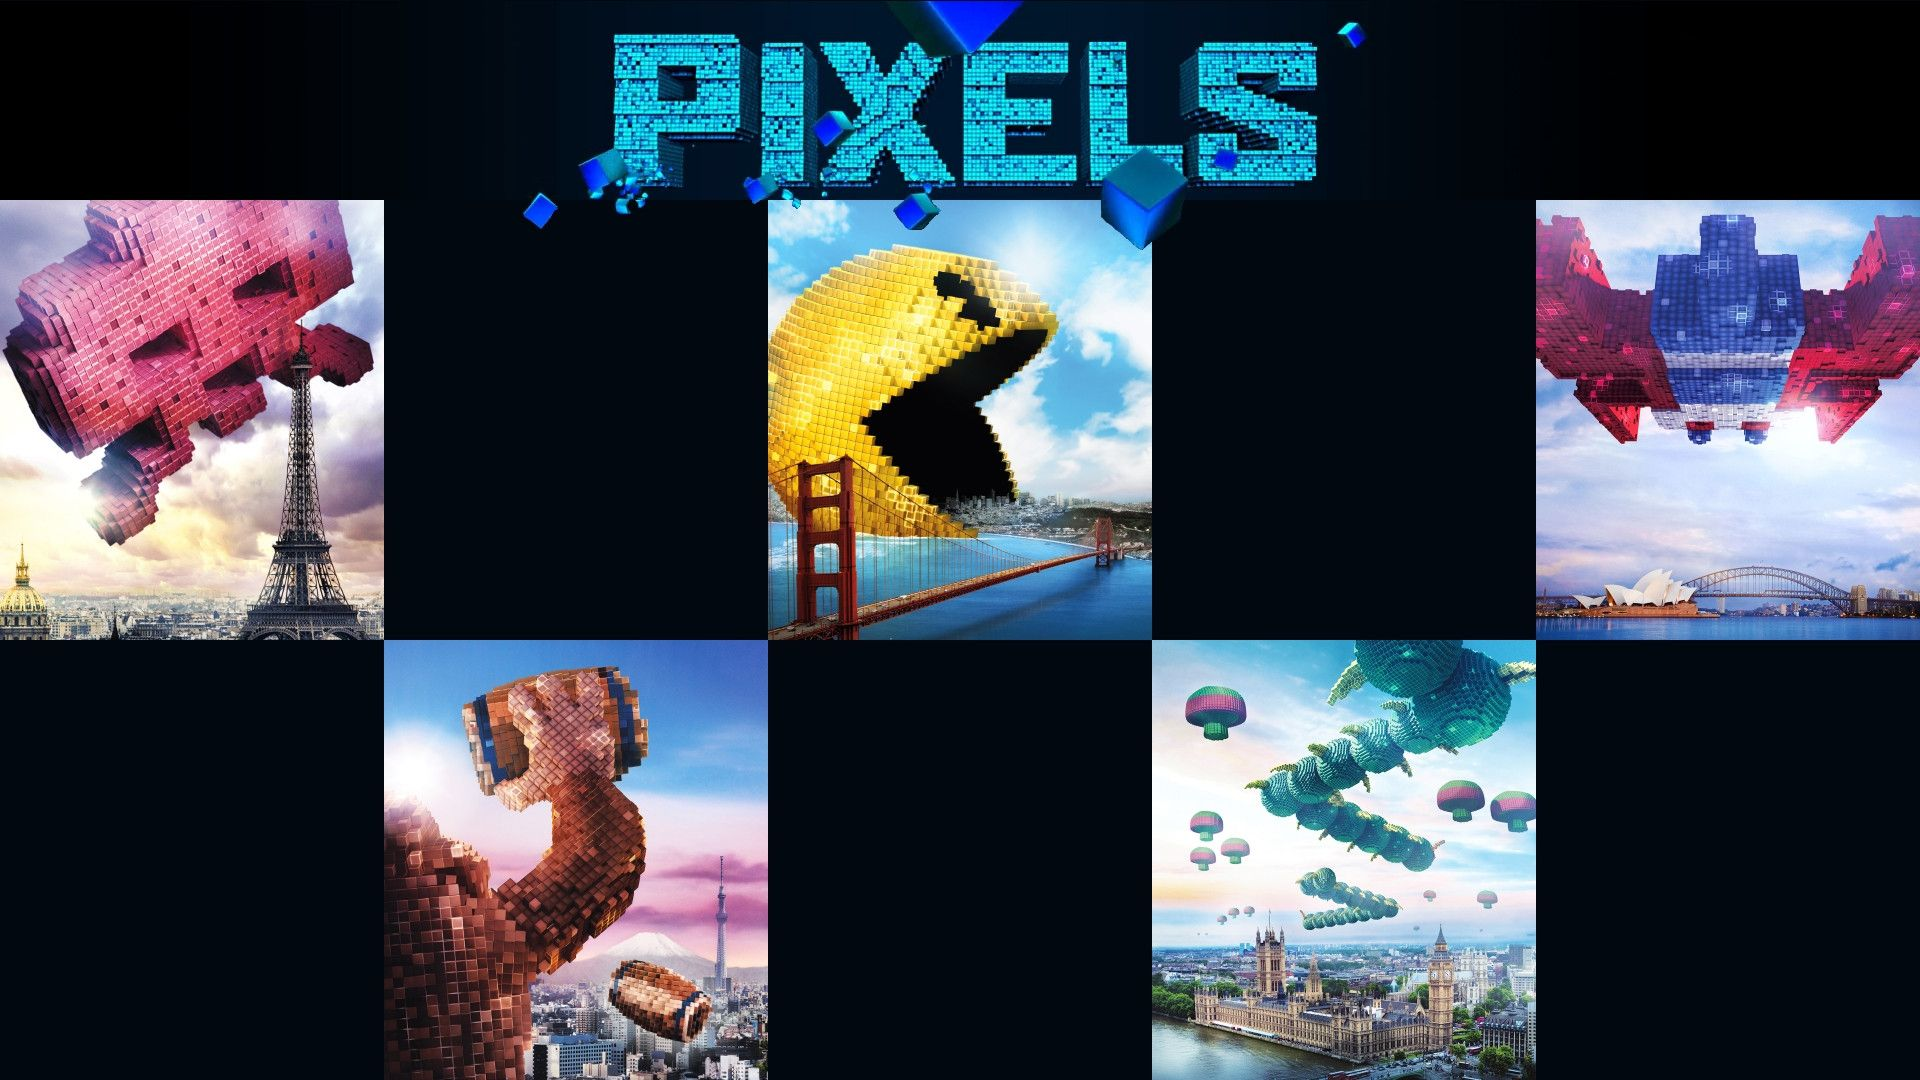 Pixels Movie Posters Of Arcade Classics 1920x1080 Wallpapers Pixels Movie Movie Wallpapers Wallpaper